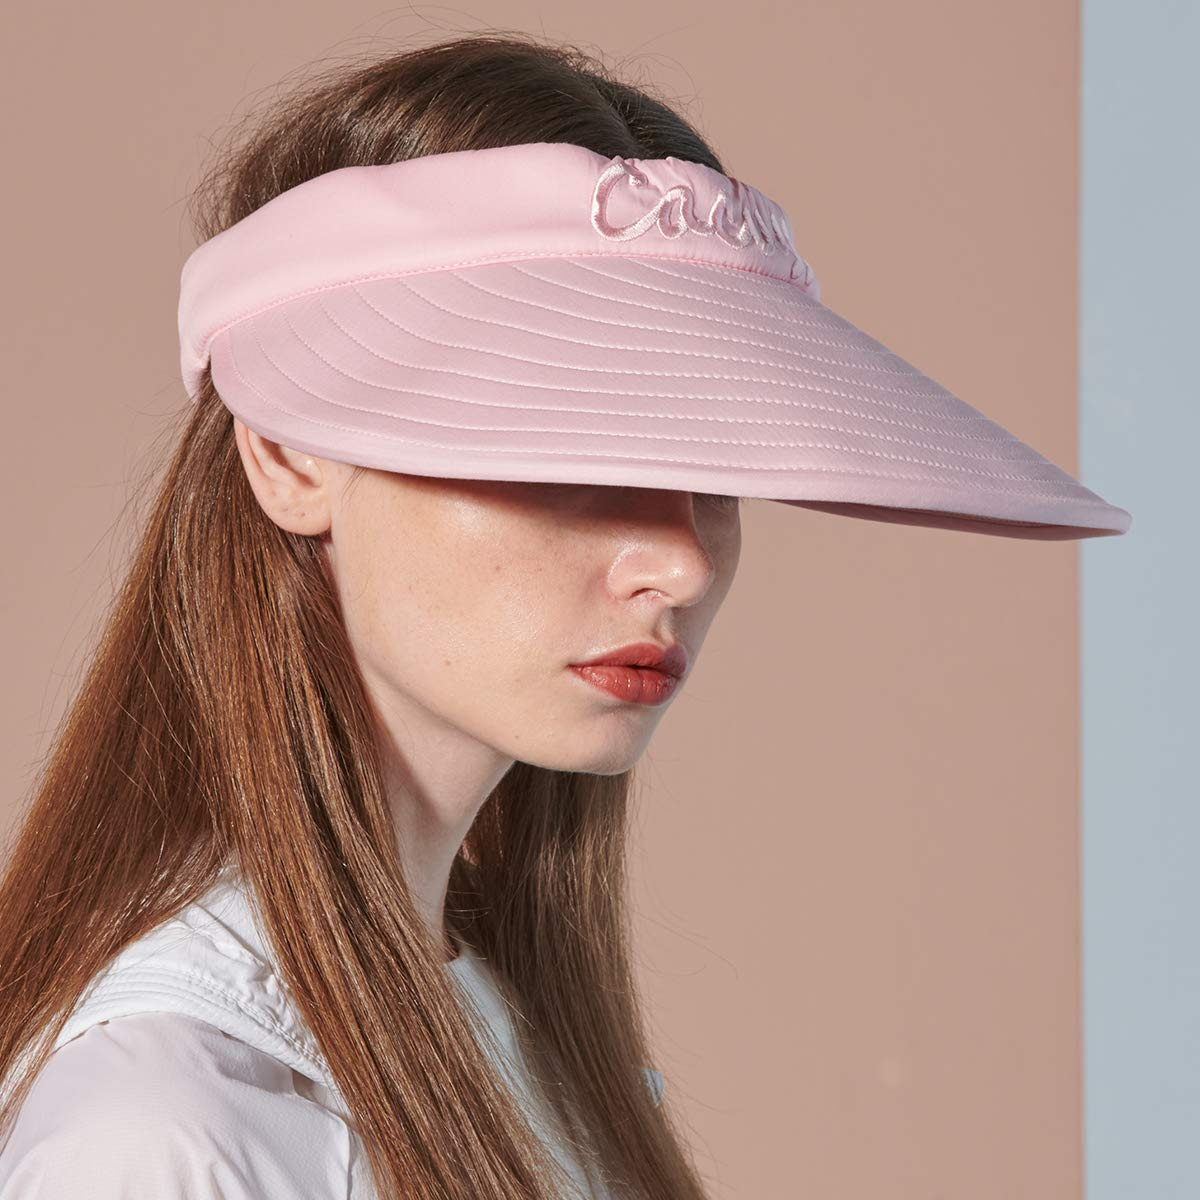 CACUSS Women's Summer Sun Hat Large Brim Visor Adjustable Magic Tape Packable UPF 50+(Pink) by CACUSS (Image #3)